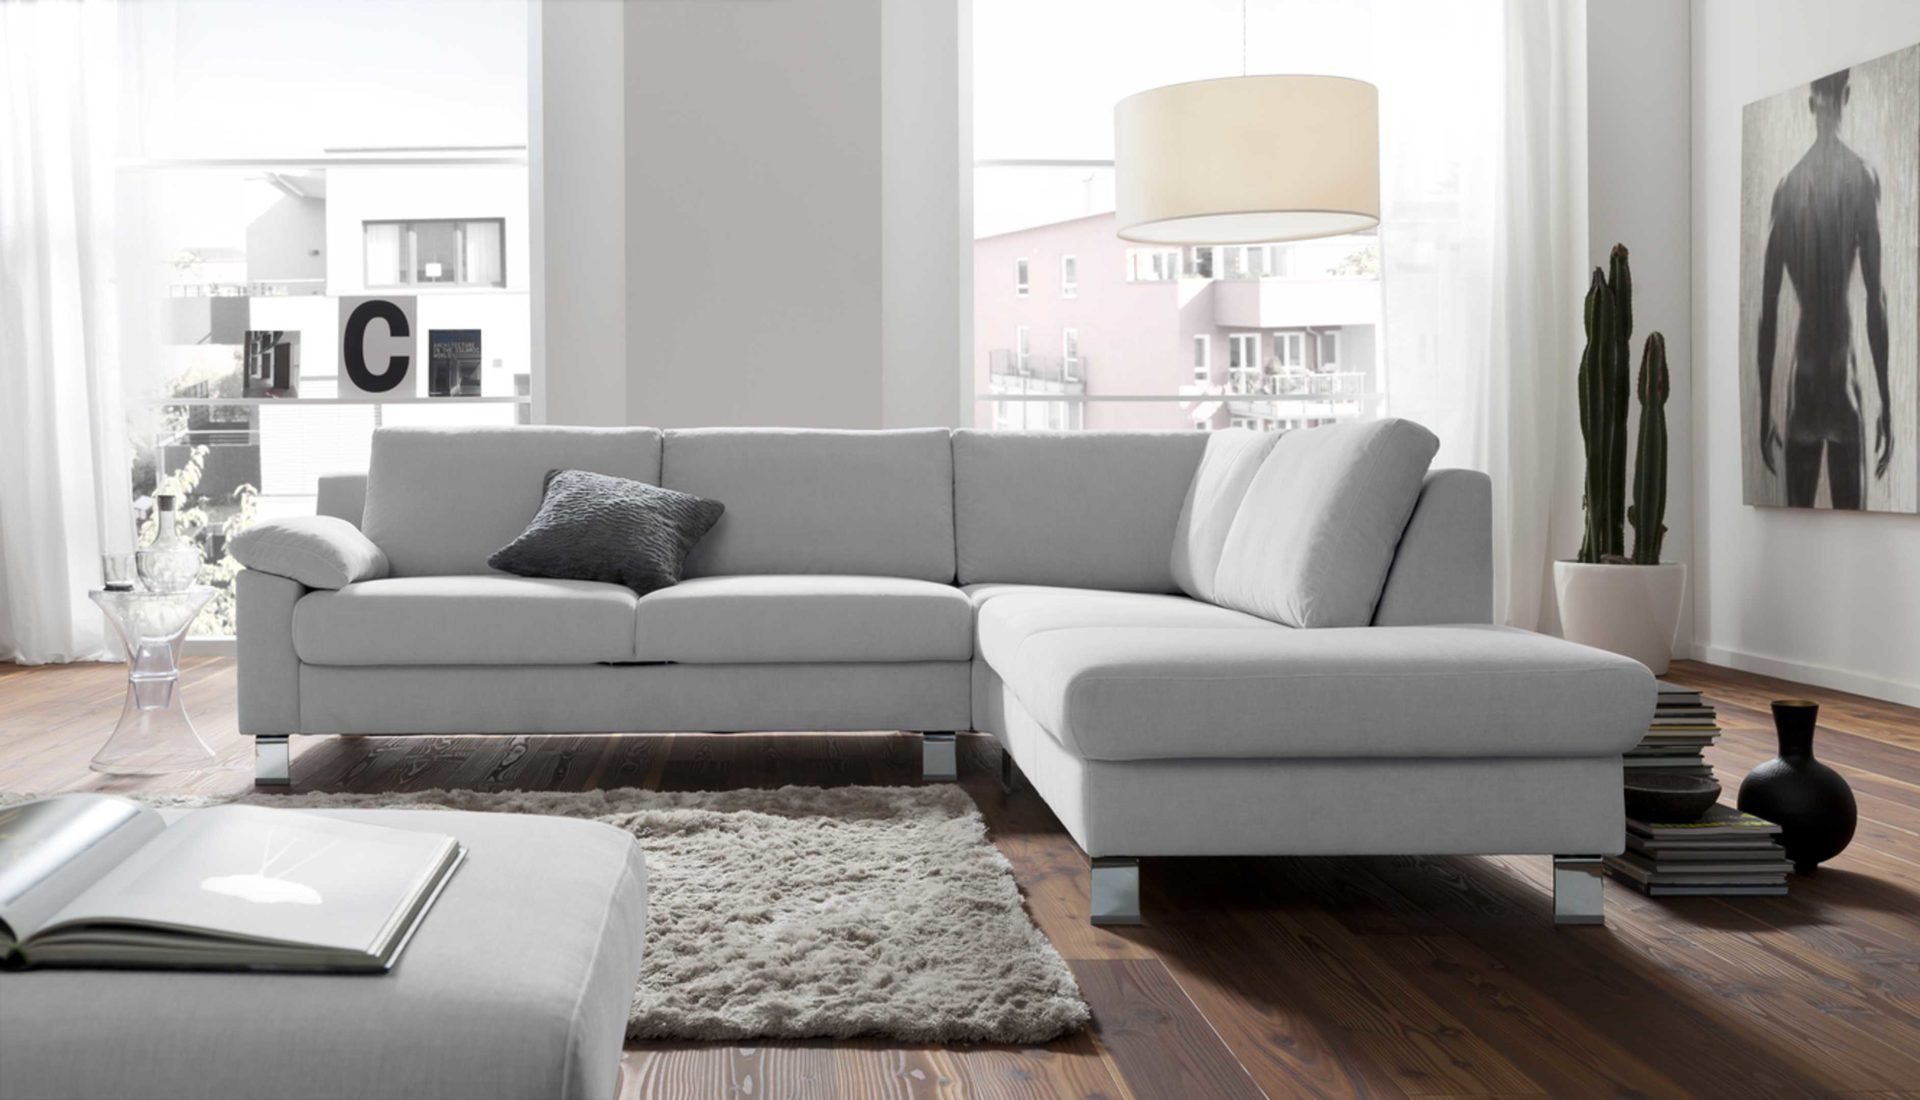 Eckcouch Modern eckcouch simple one eckcouch landhaus lovely interieur for riv